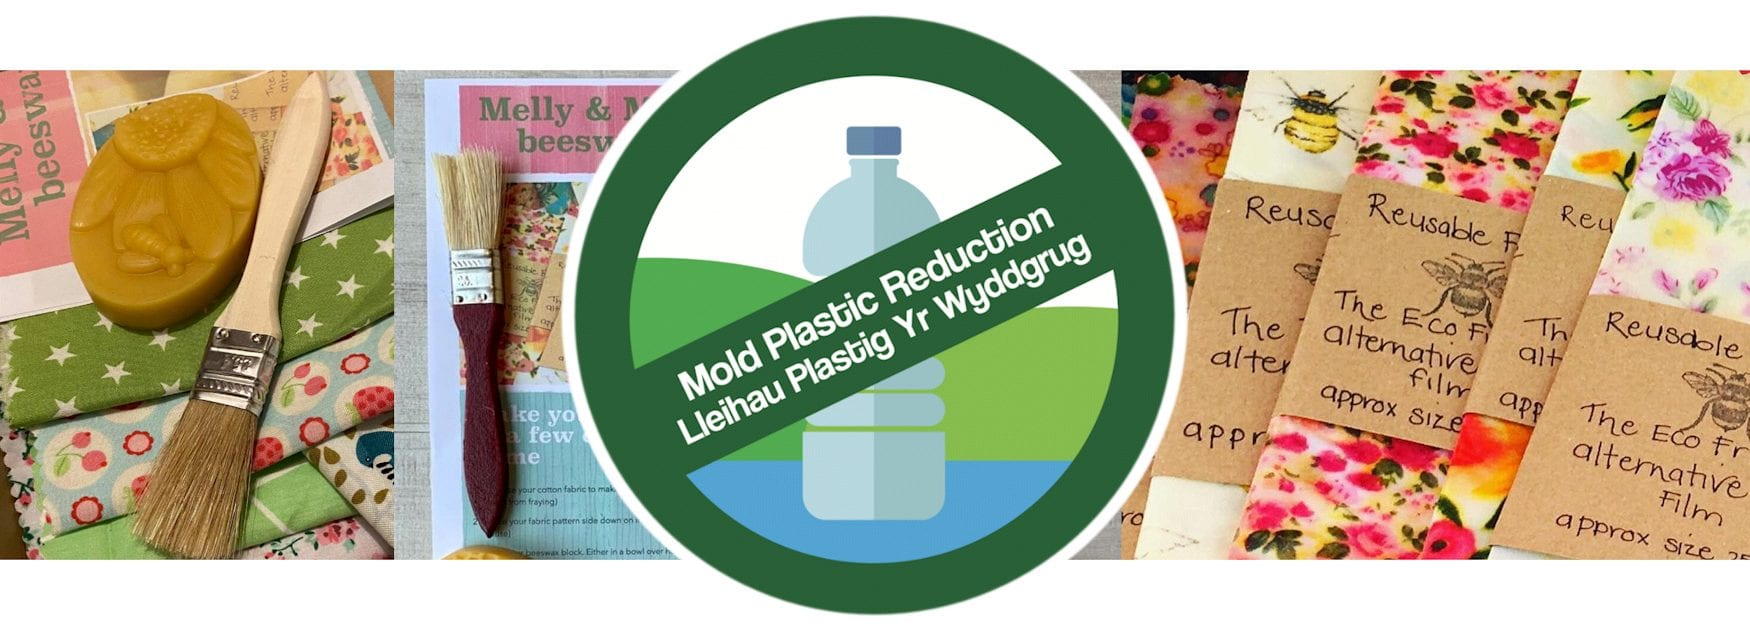 Header image for Plastic Reduction Hacks page showing beeswax wraps